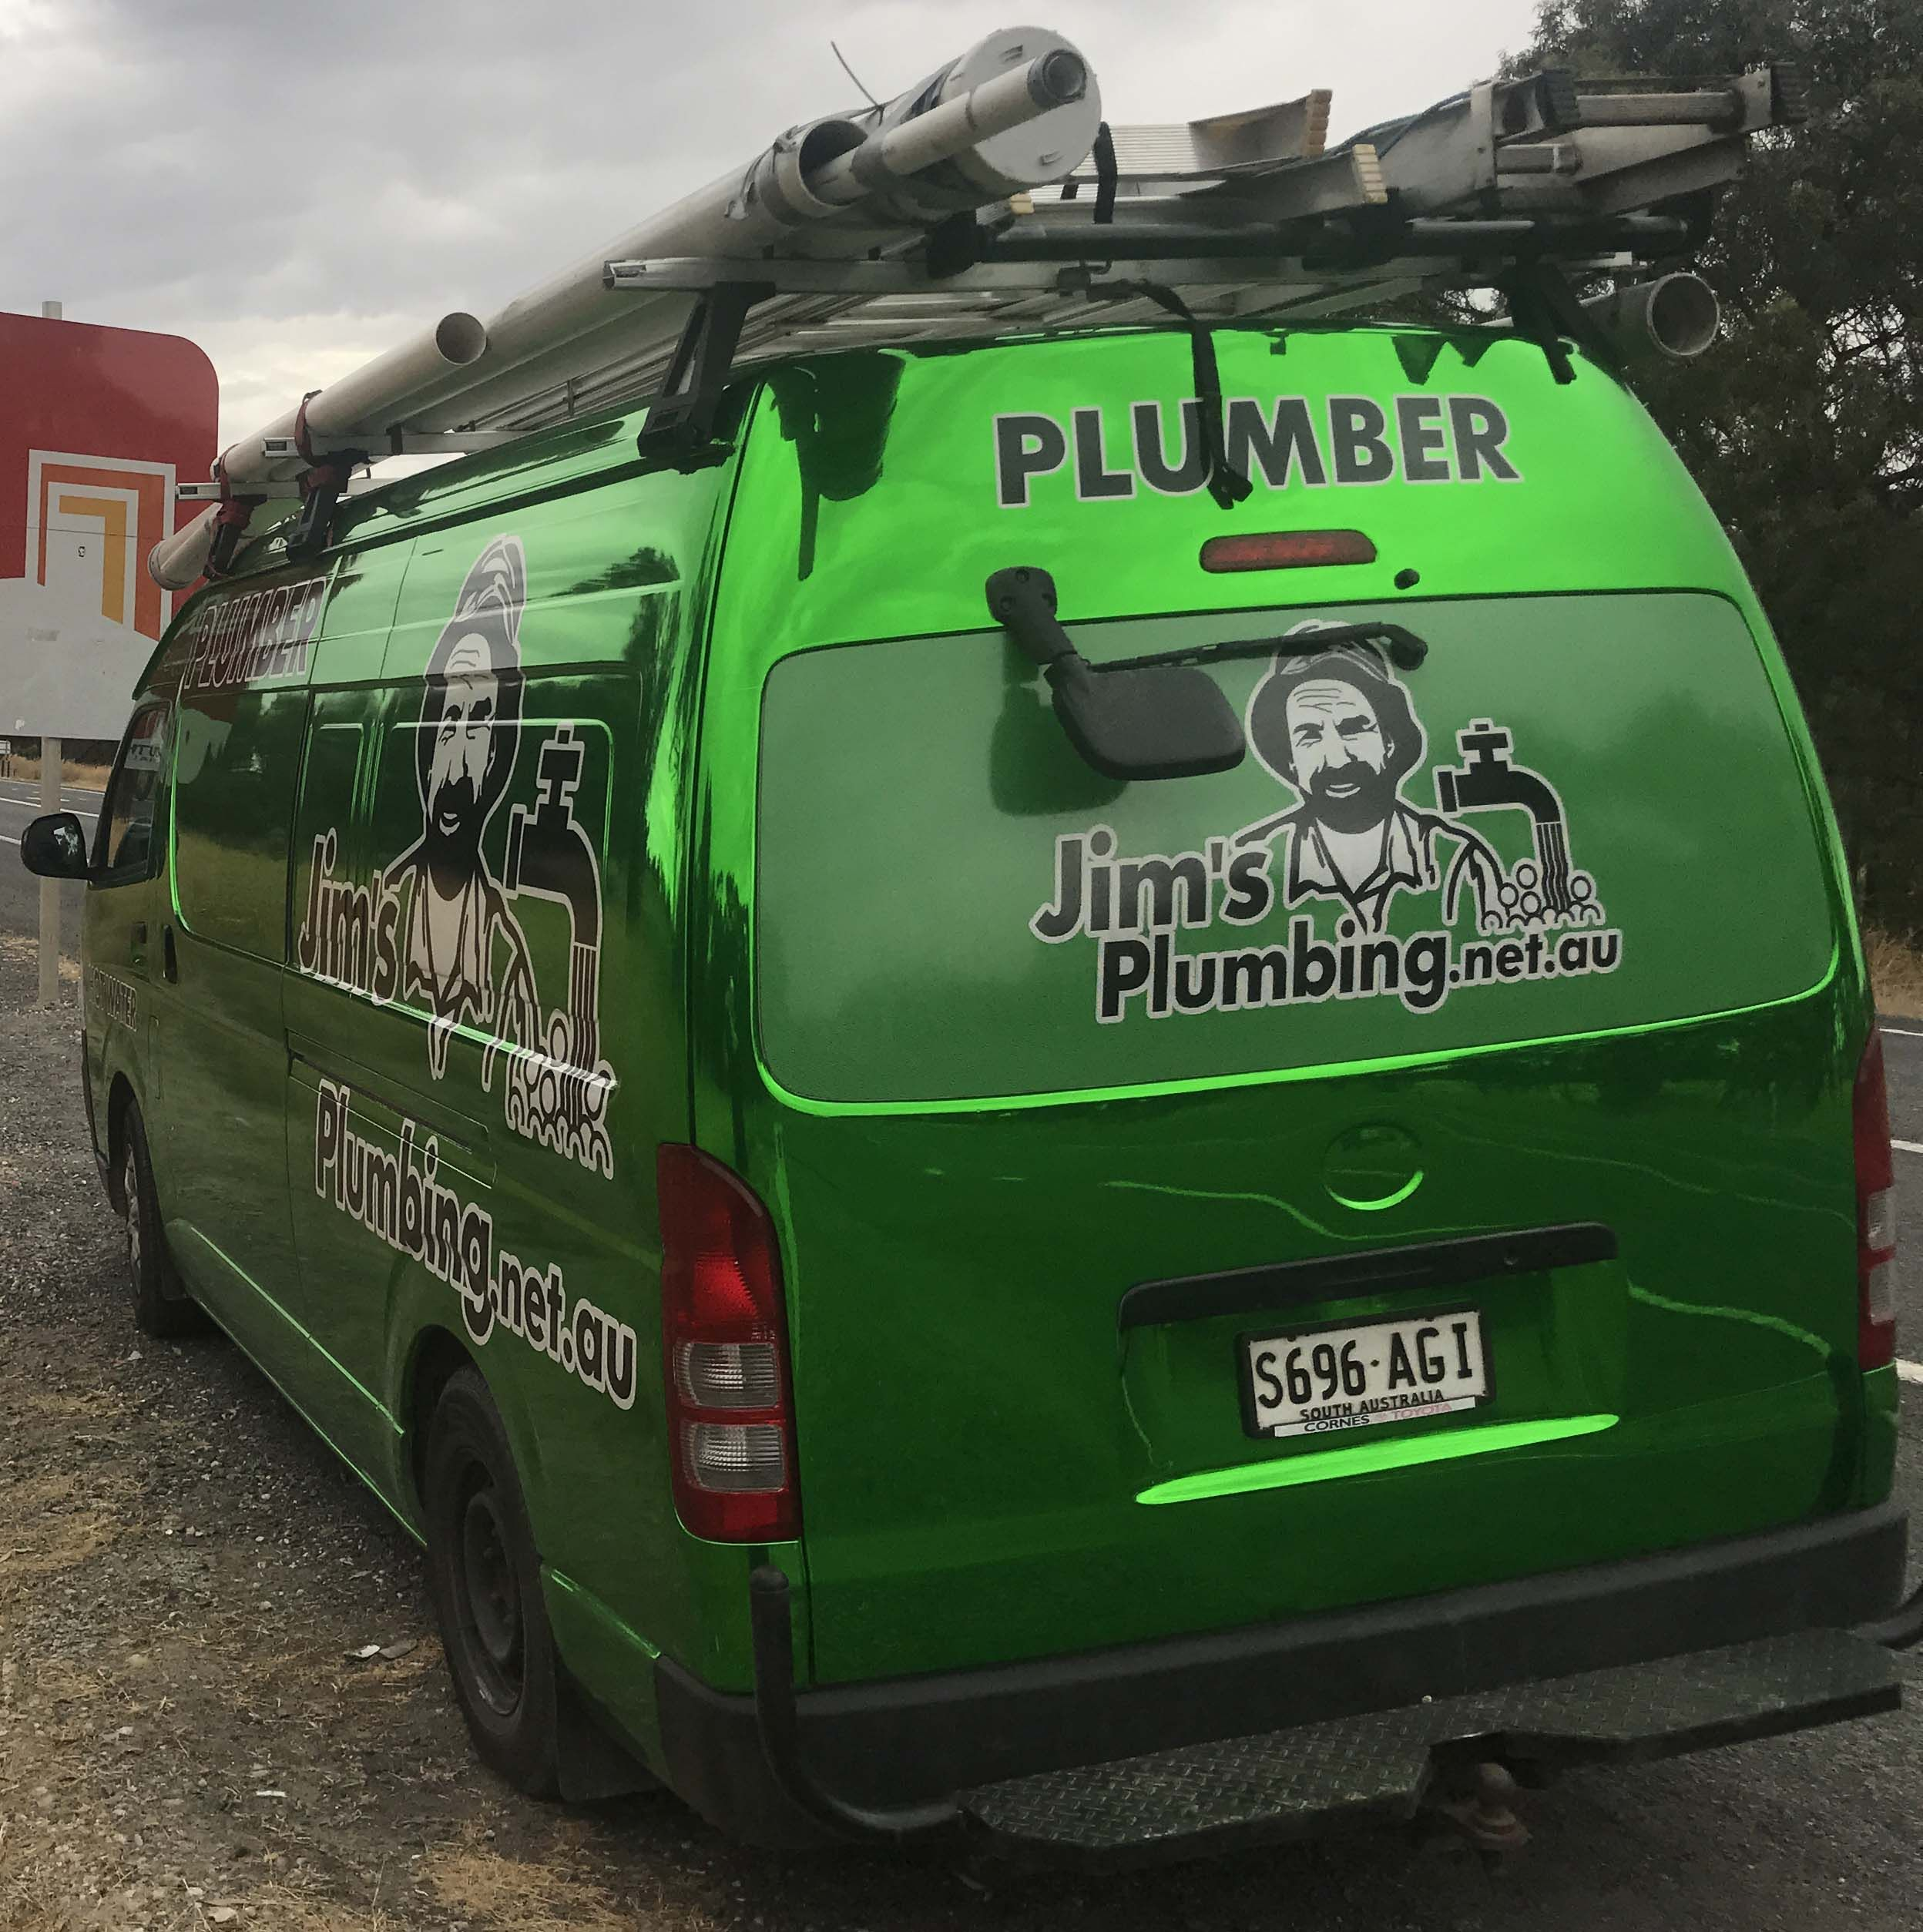 Jimus plumbing jimsplumbing on pinterest